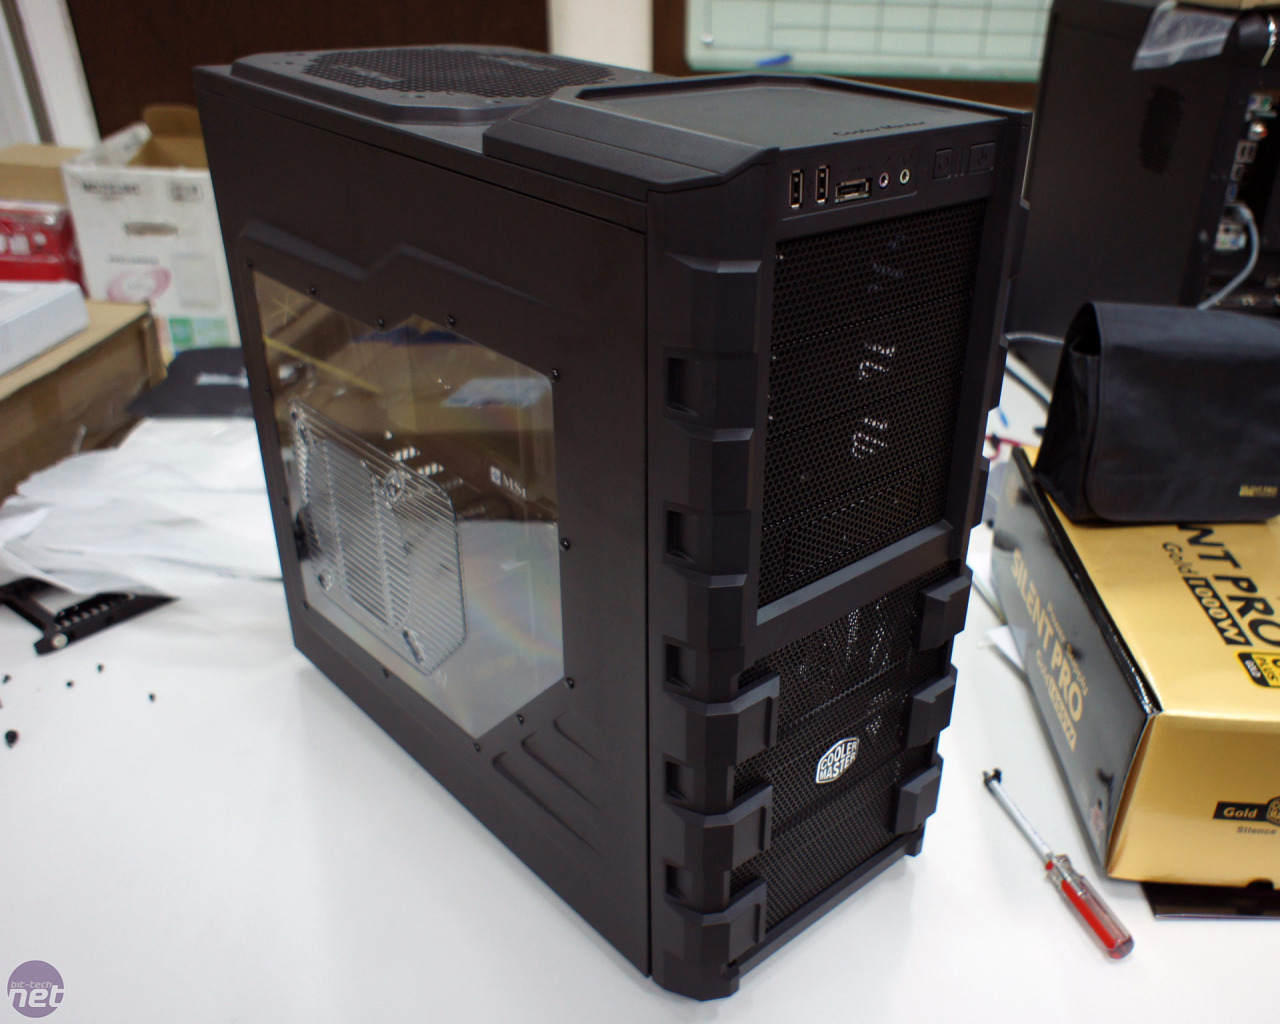 casing HAF 912,922,nzxt phantom 410,psu tagan,Thermal Take, madara,acbel,silverstone